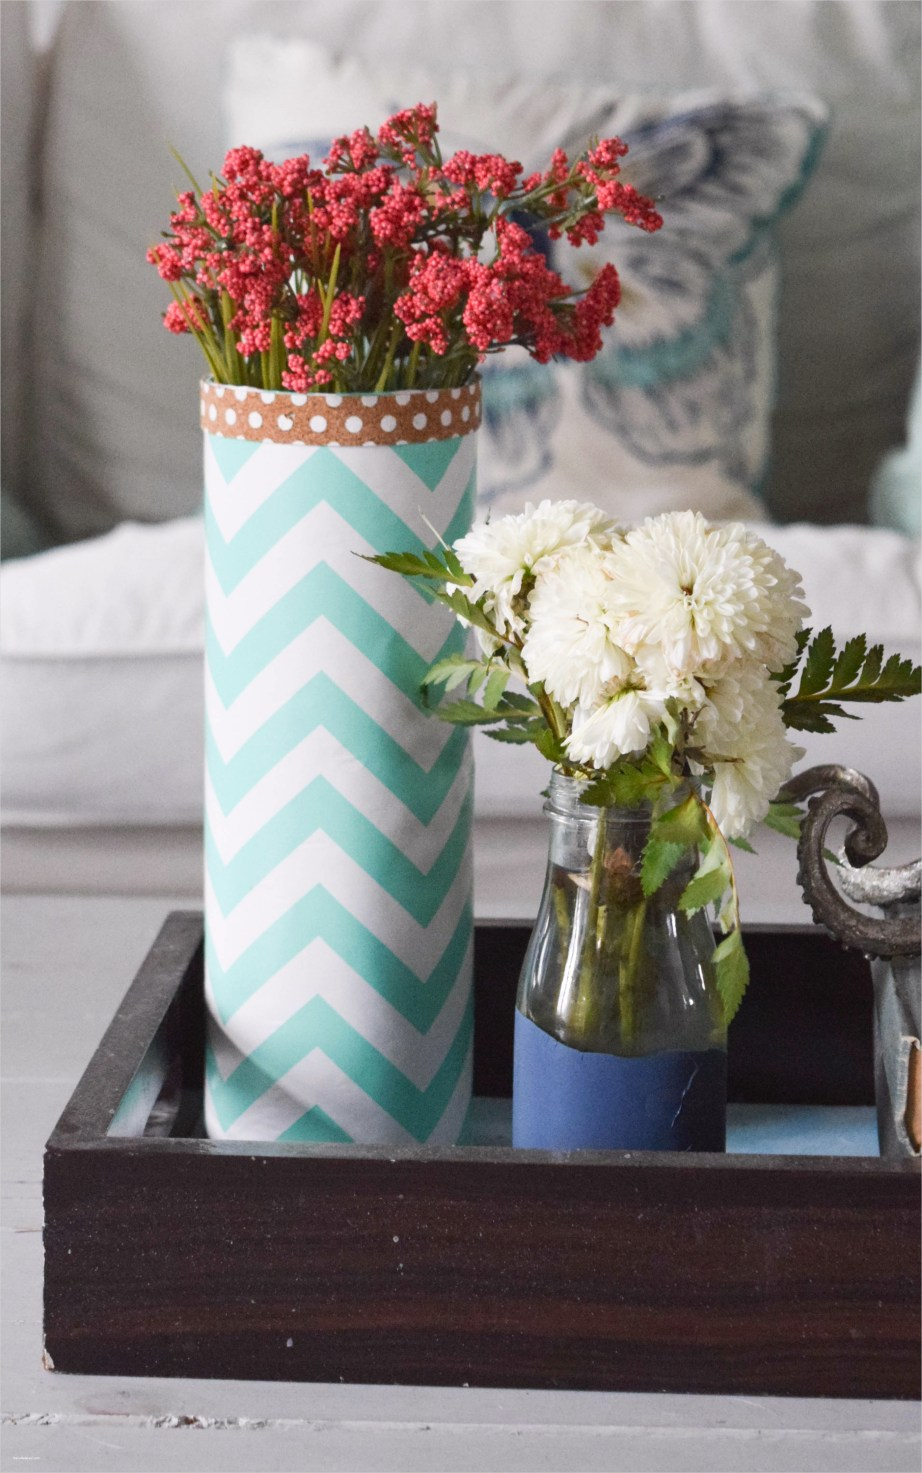 Spring Floral Bedroom Decor 62 Spring Home tour A Coastal and Bold Style • Our House now A Home 9